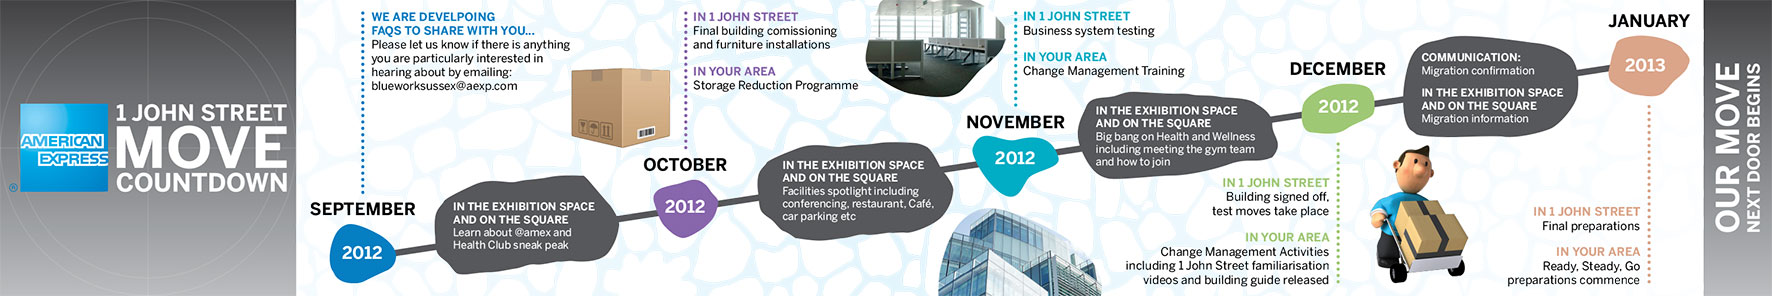 AMEX New Building Time Line Poster